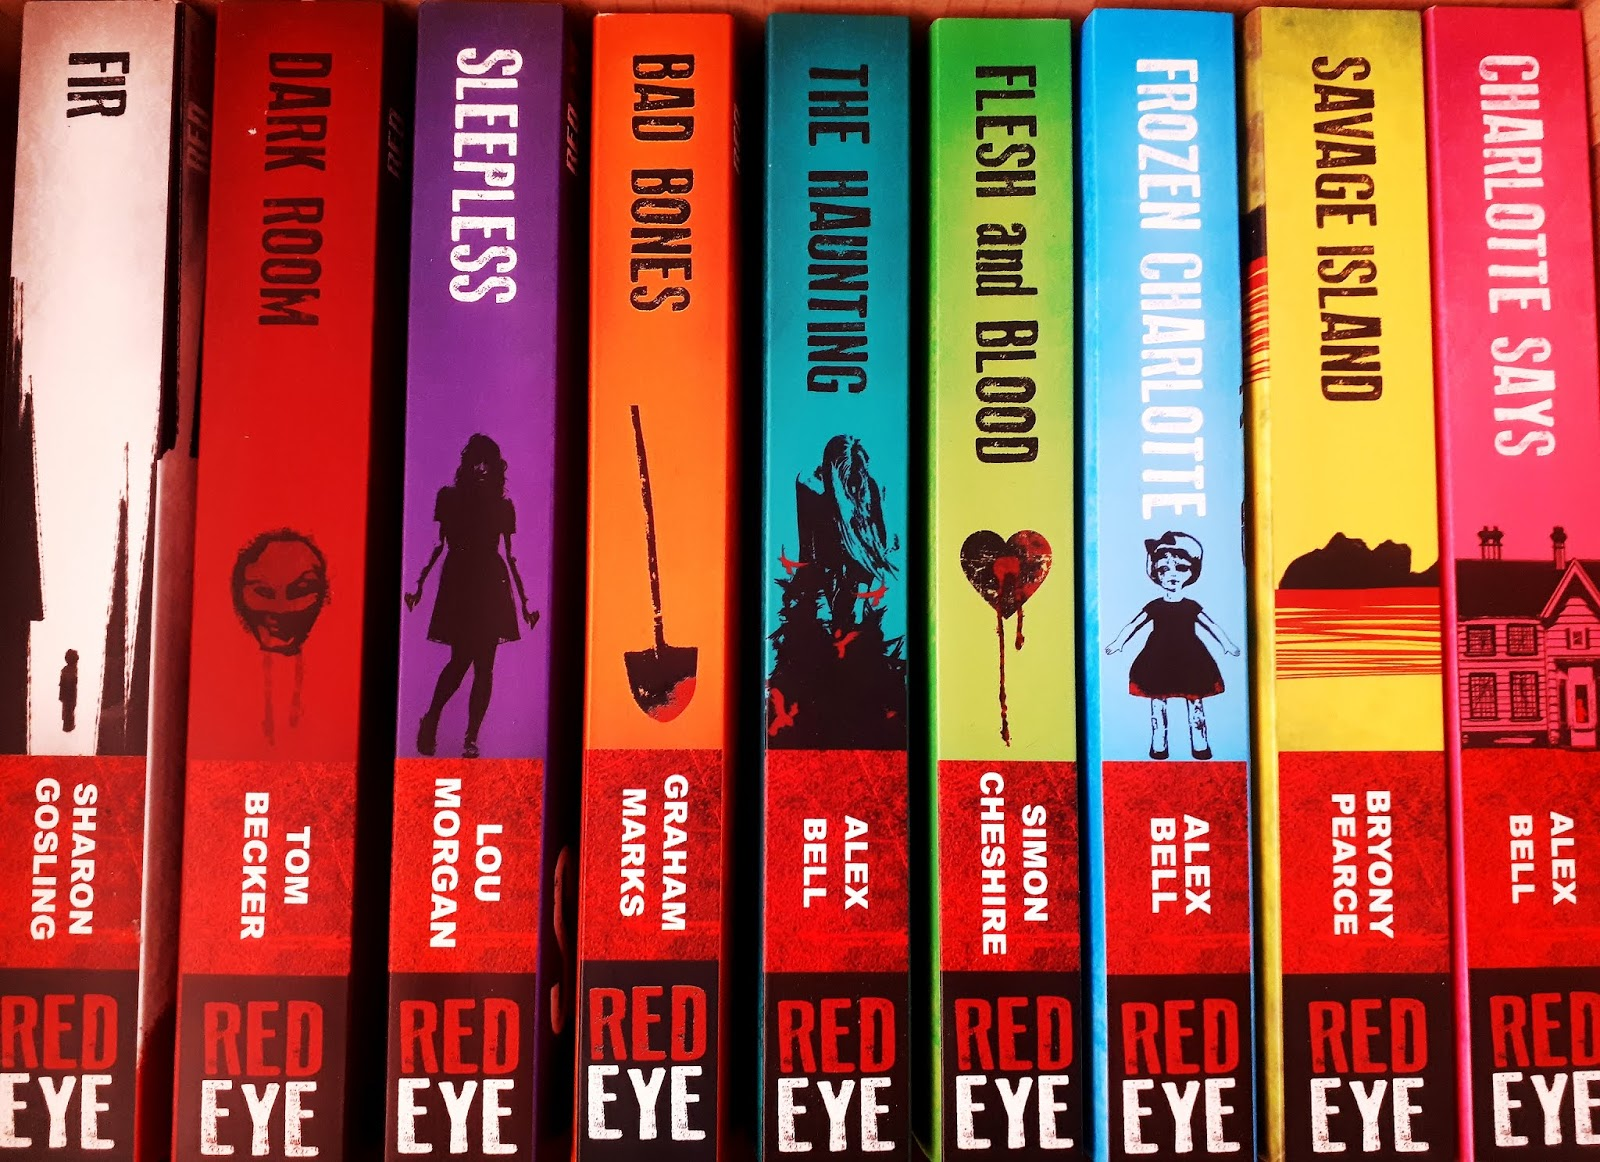 RED EYE BOOKS SERIES | Books2Door - nosaferplace